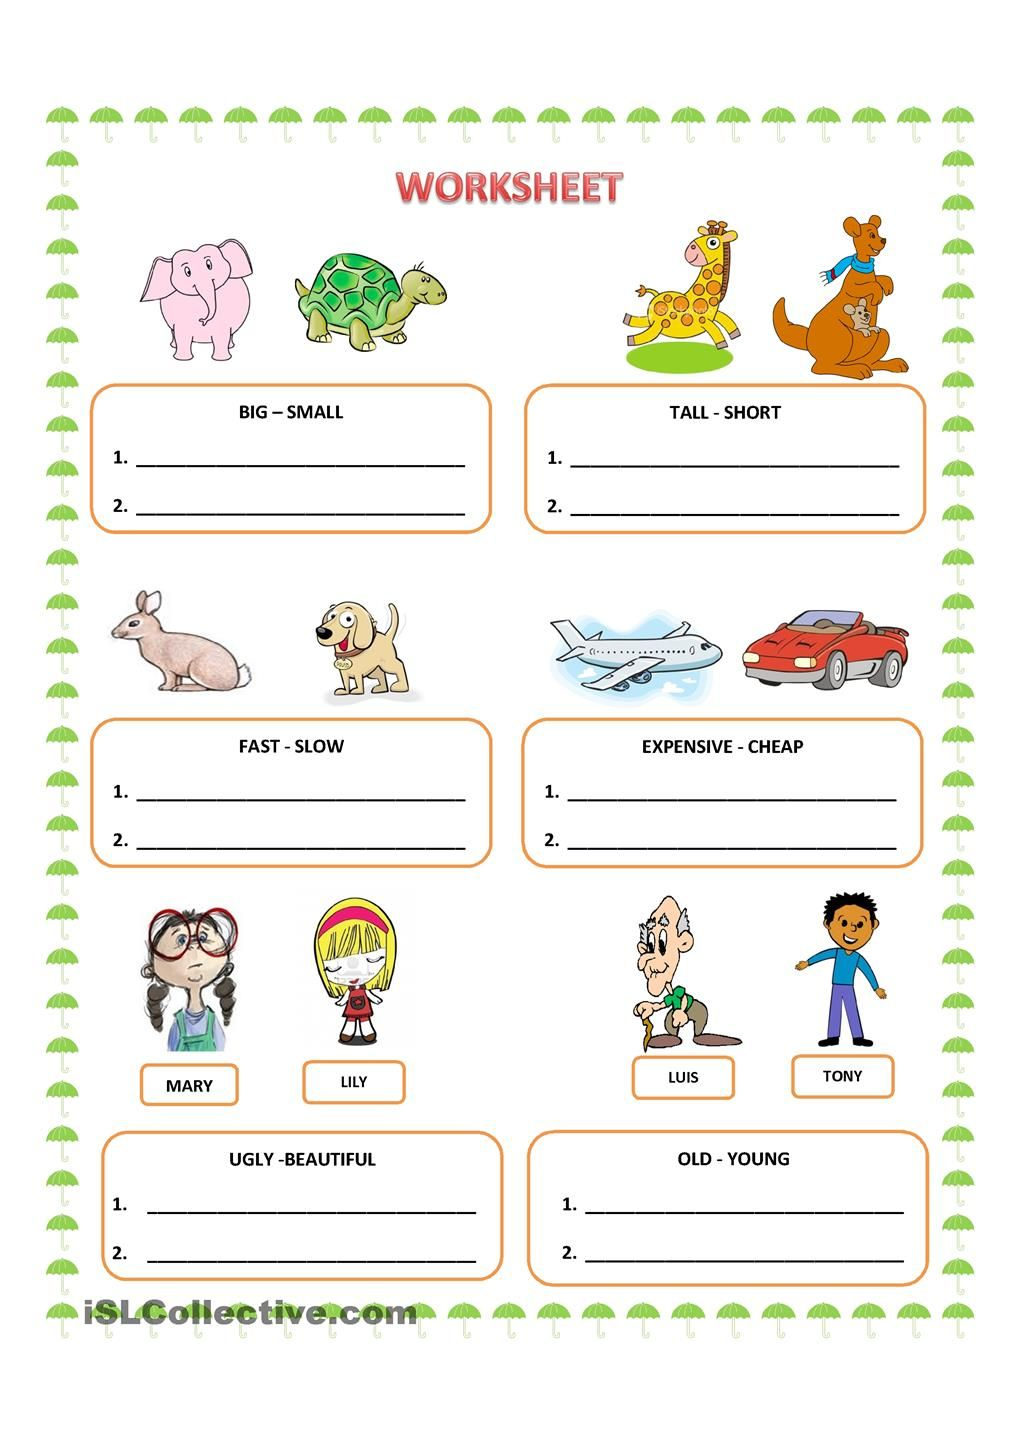 worksheet Comparative Adjectives Worksheets 78 images about comparatives on pinterest mars student and board games